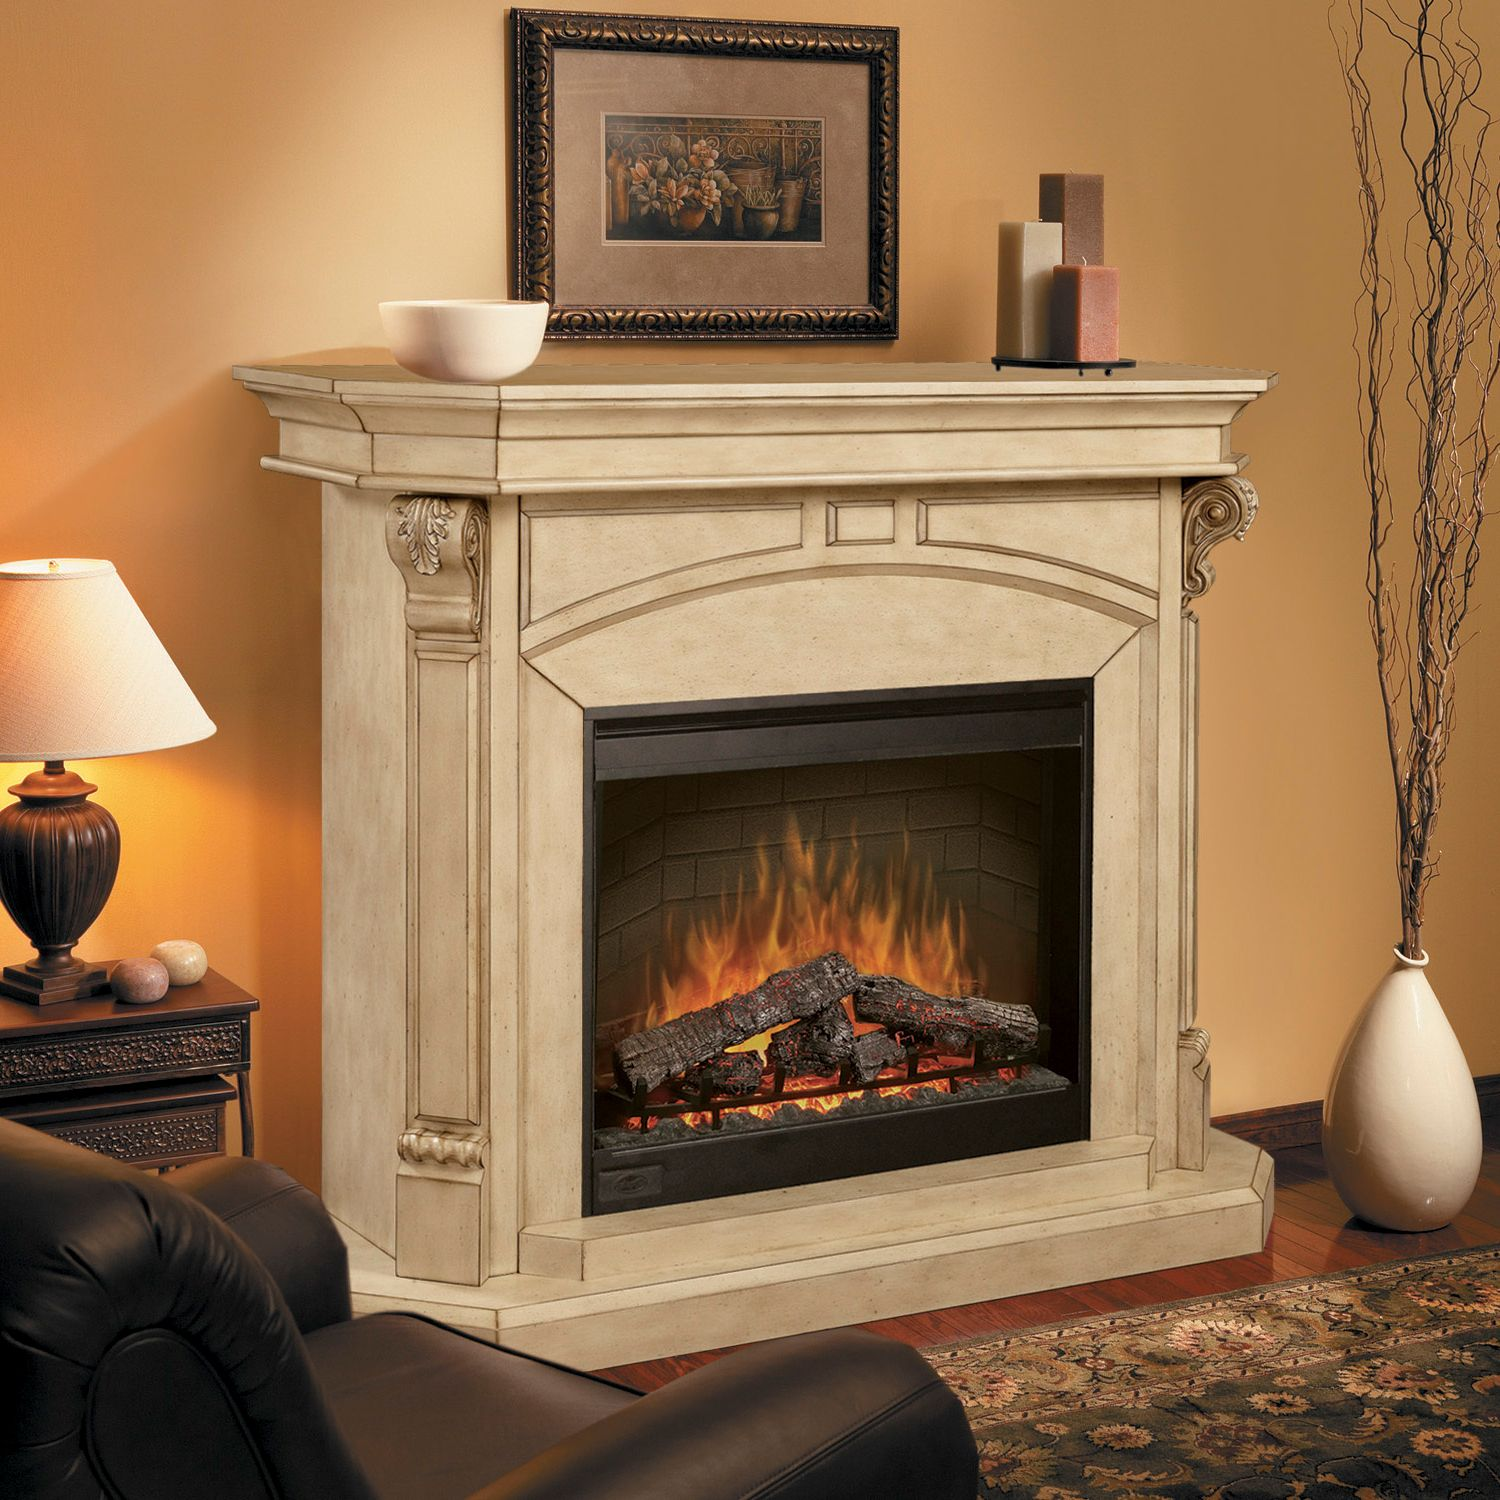 electric fireplace need for gas a efficient btu and i my is energy what do